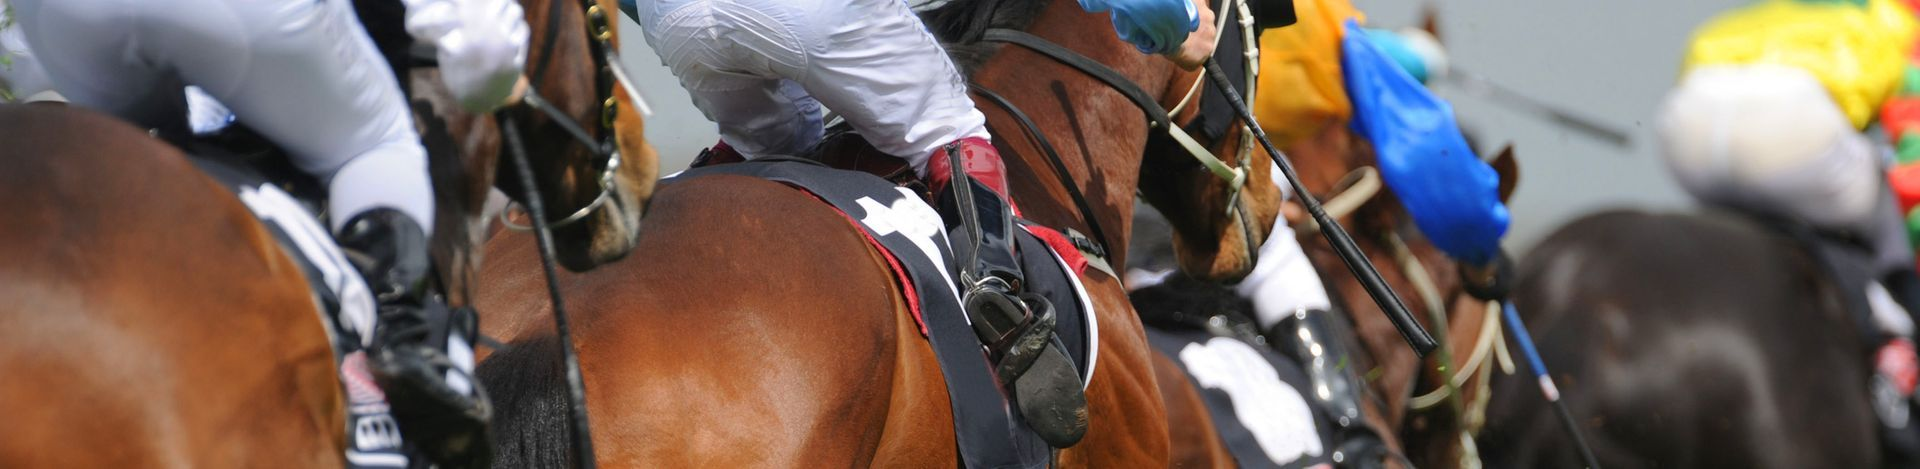 Refreshing opportunities for the horse racing industry